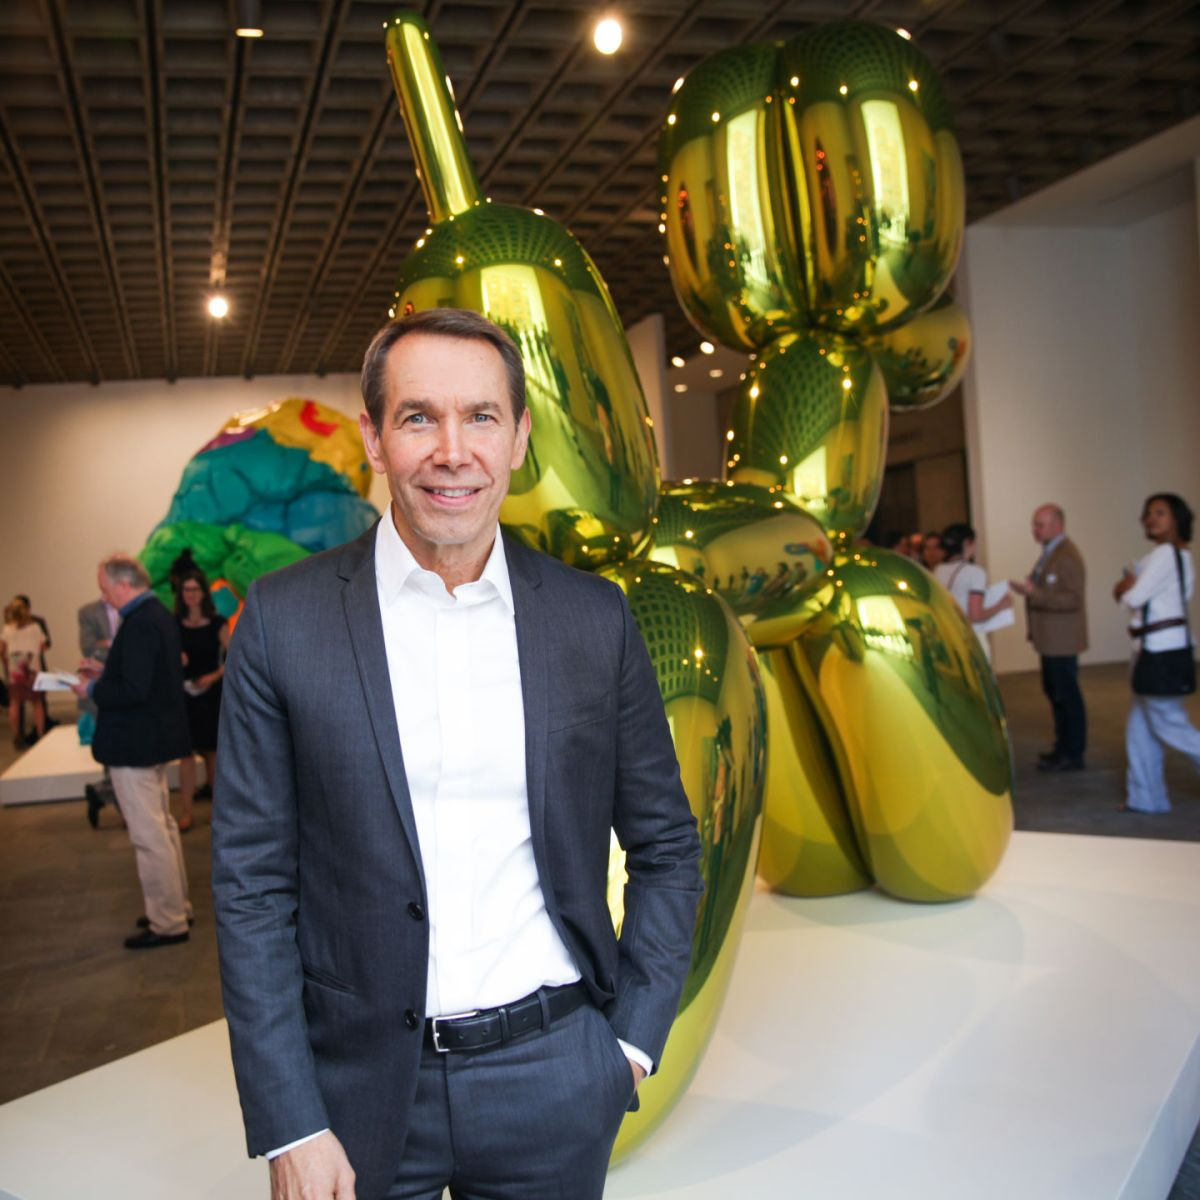 Artist Jeff Koons World-famous And Controversial